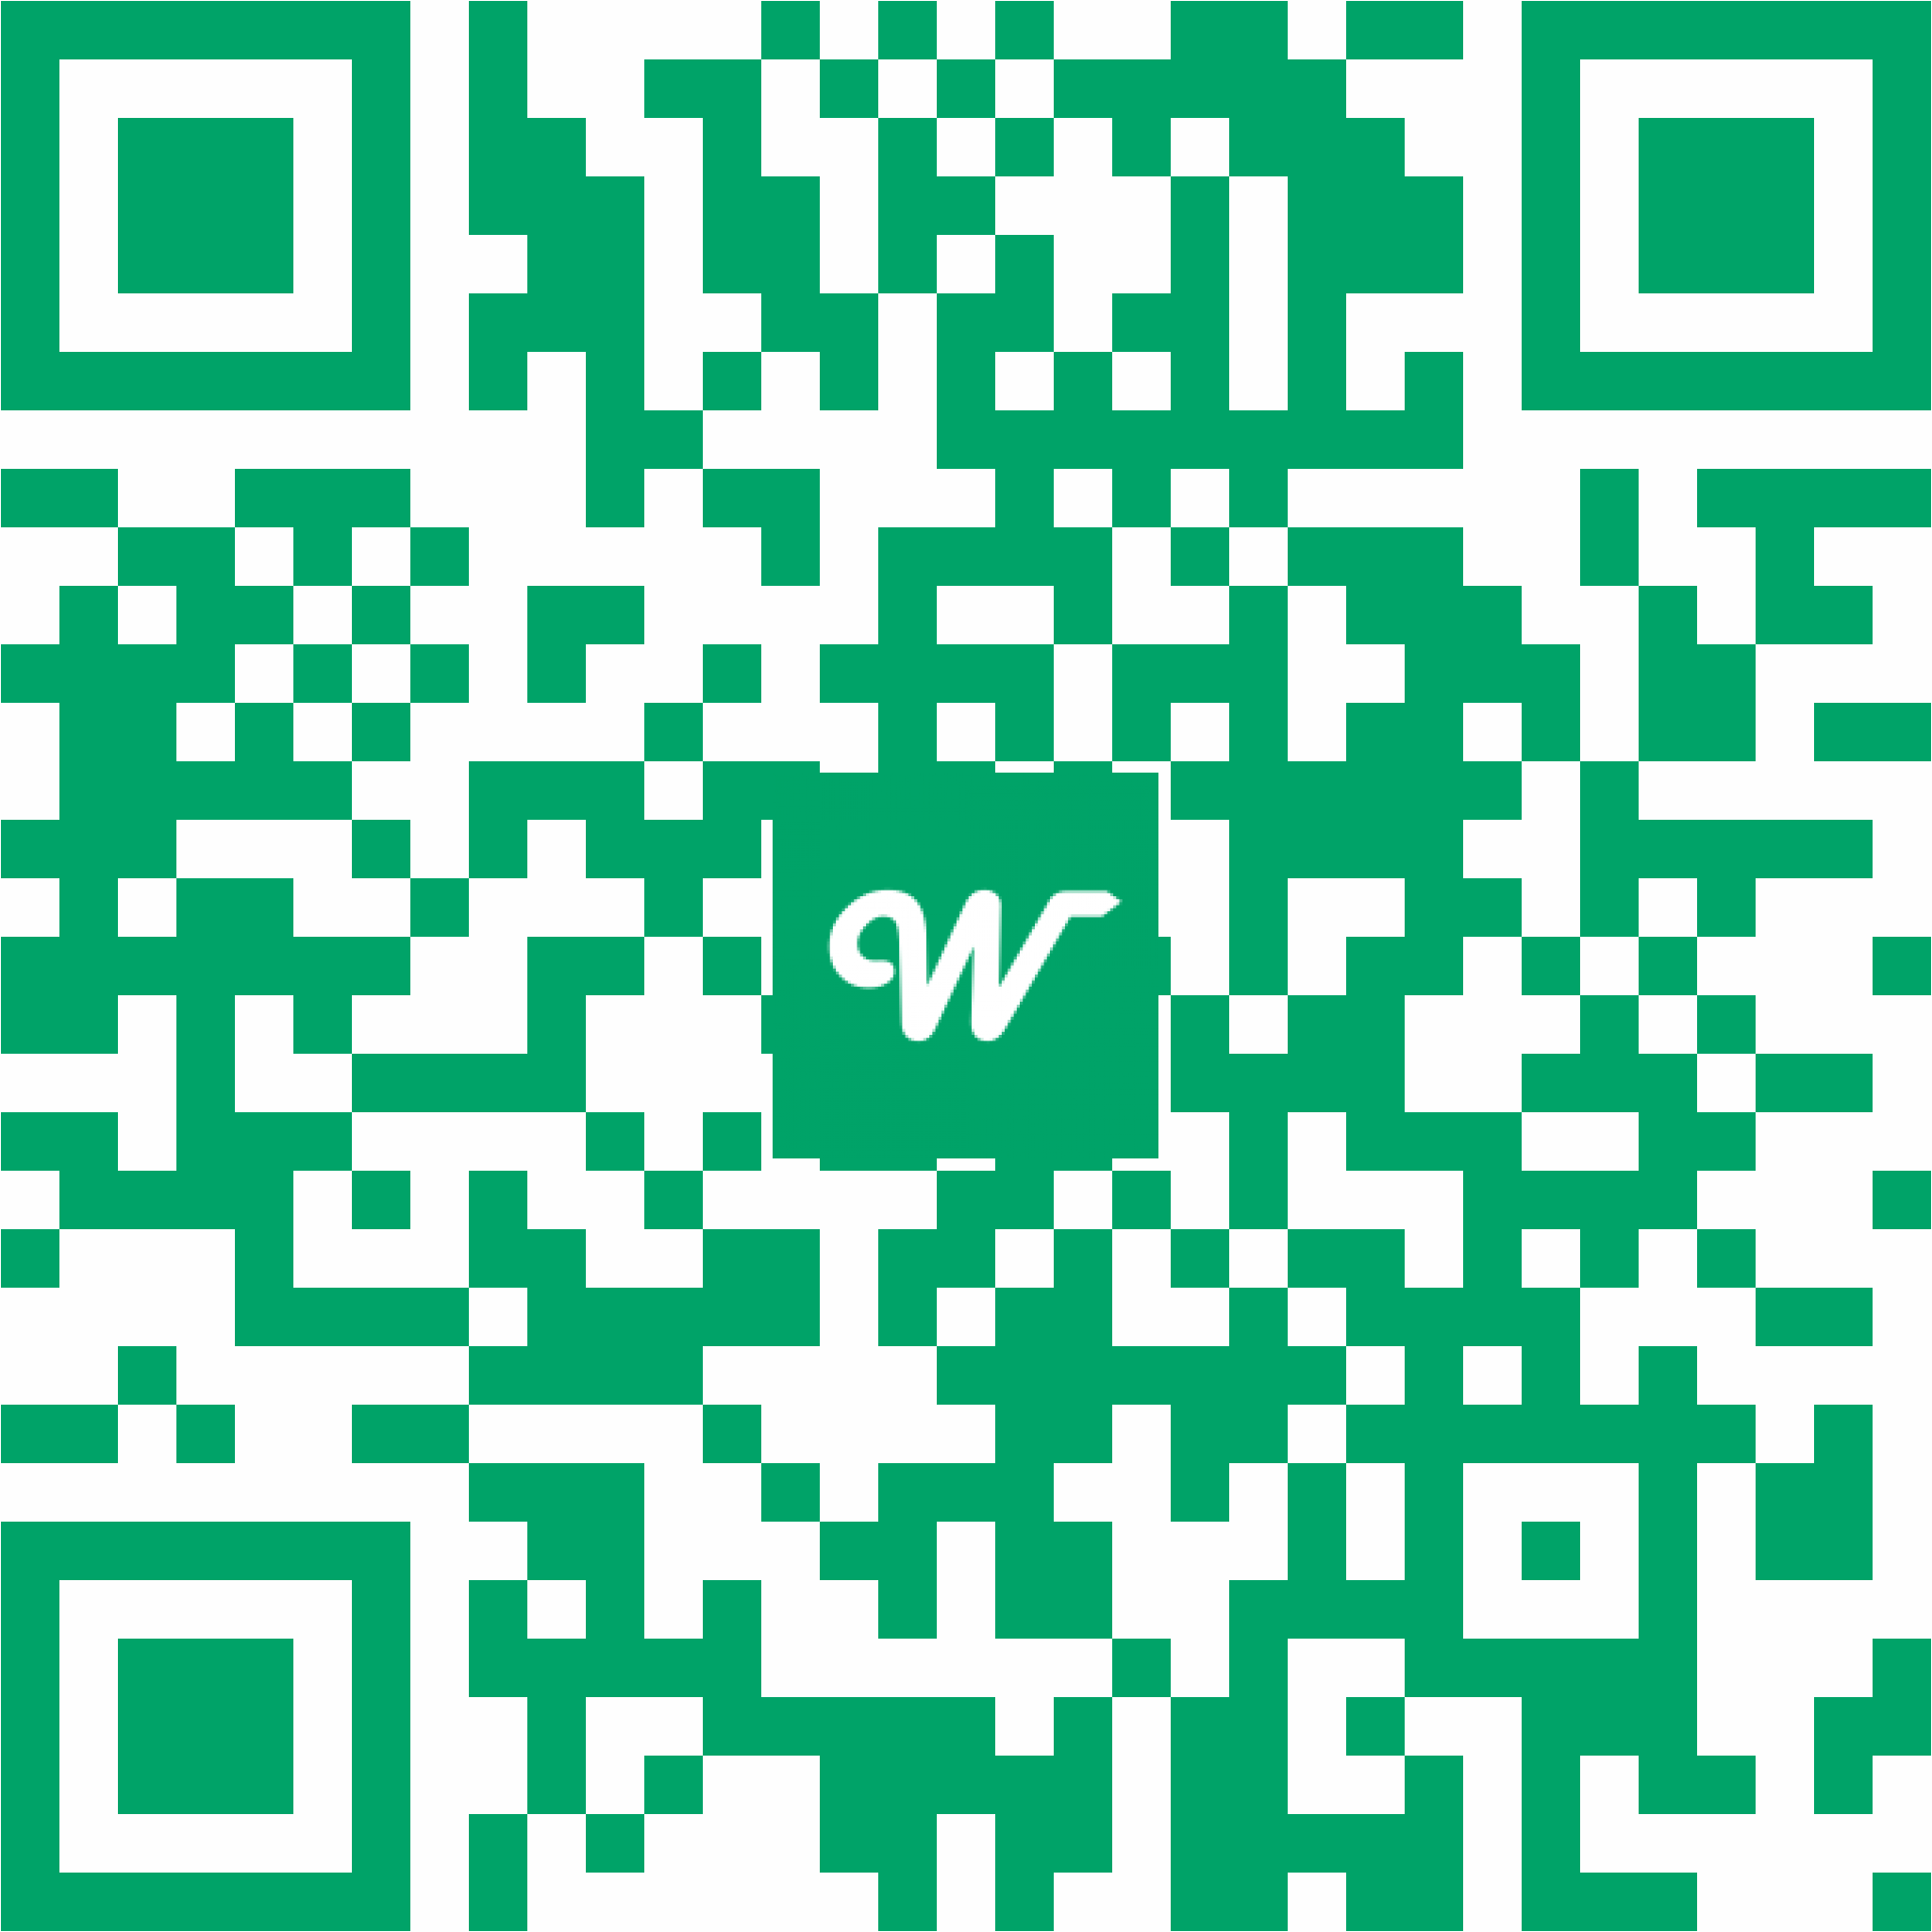 Printable QR code for Electric Quarter